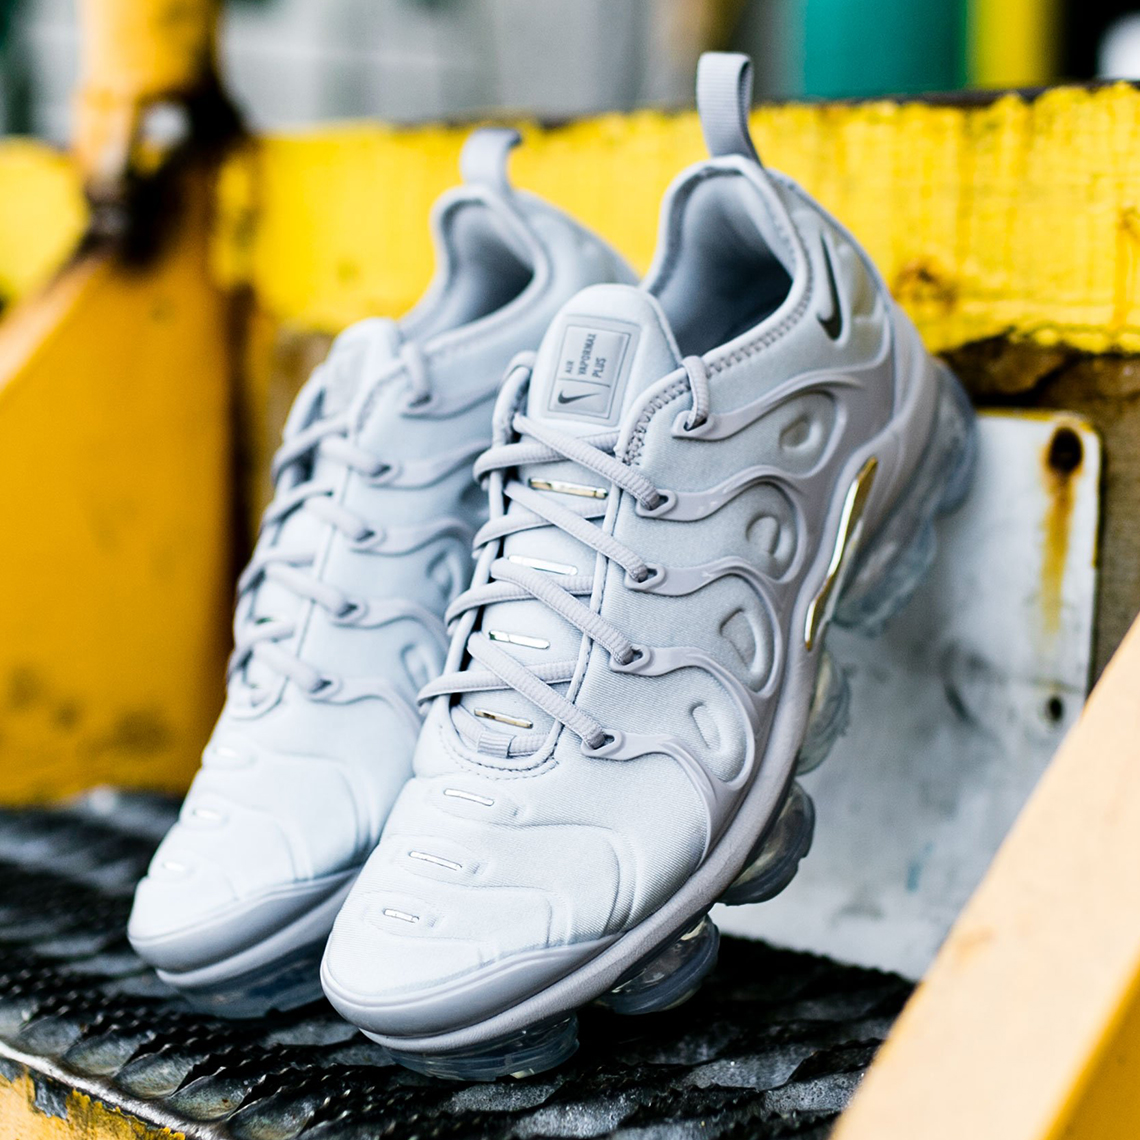 on sale eed9c b6f4e ... hit of metallic silver on its midfoot shank. Fans of this distinguished  new Vapormax Plus can log onto select retailers like Rock City Kicks and  pick up ...